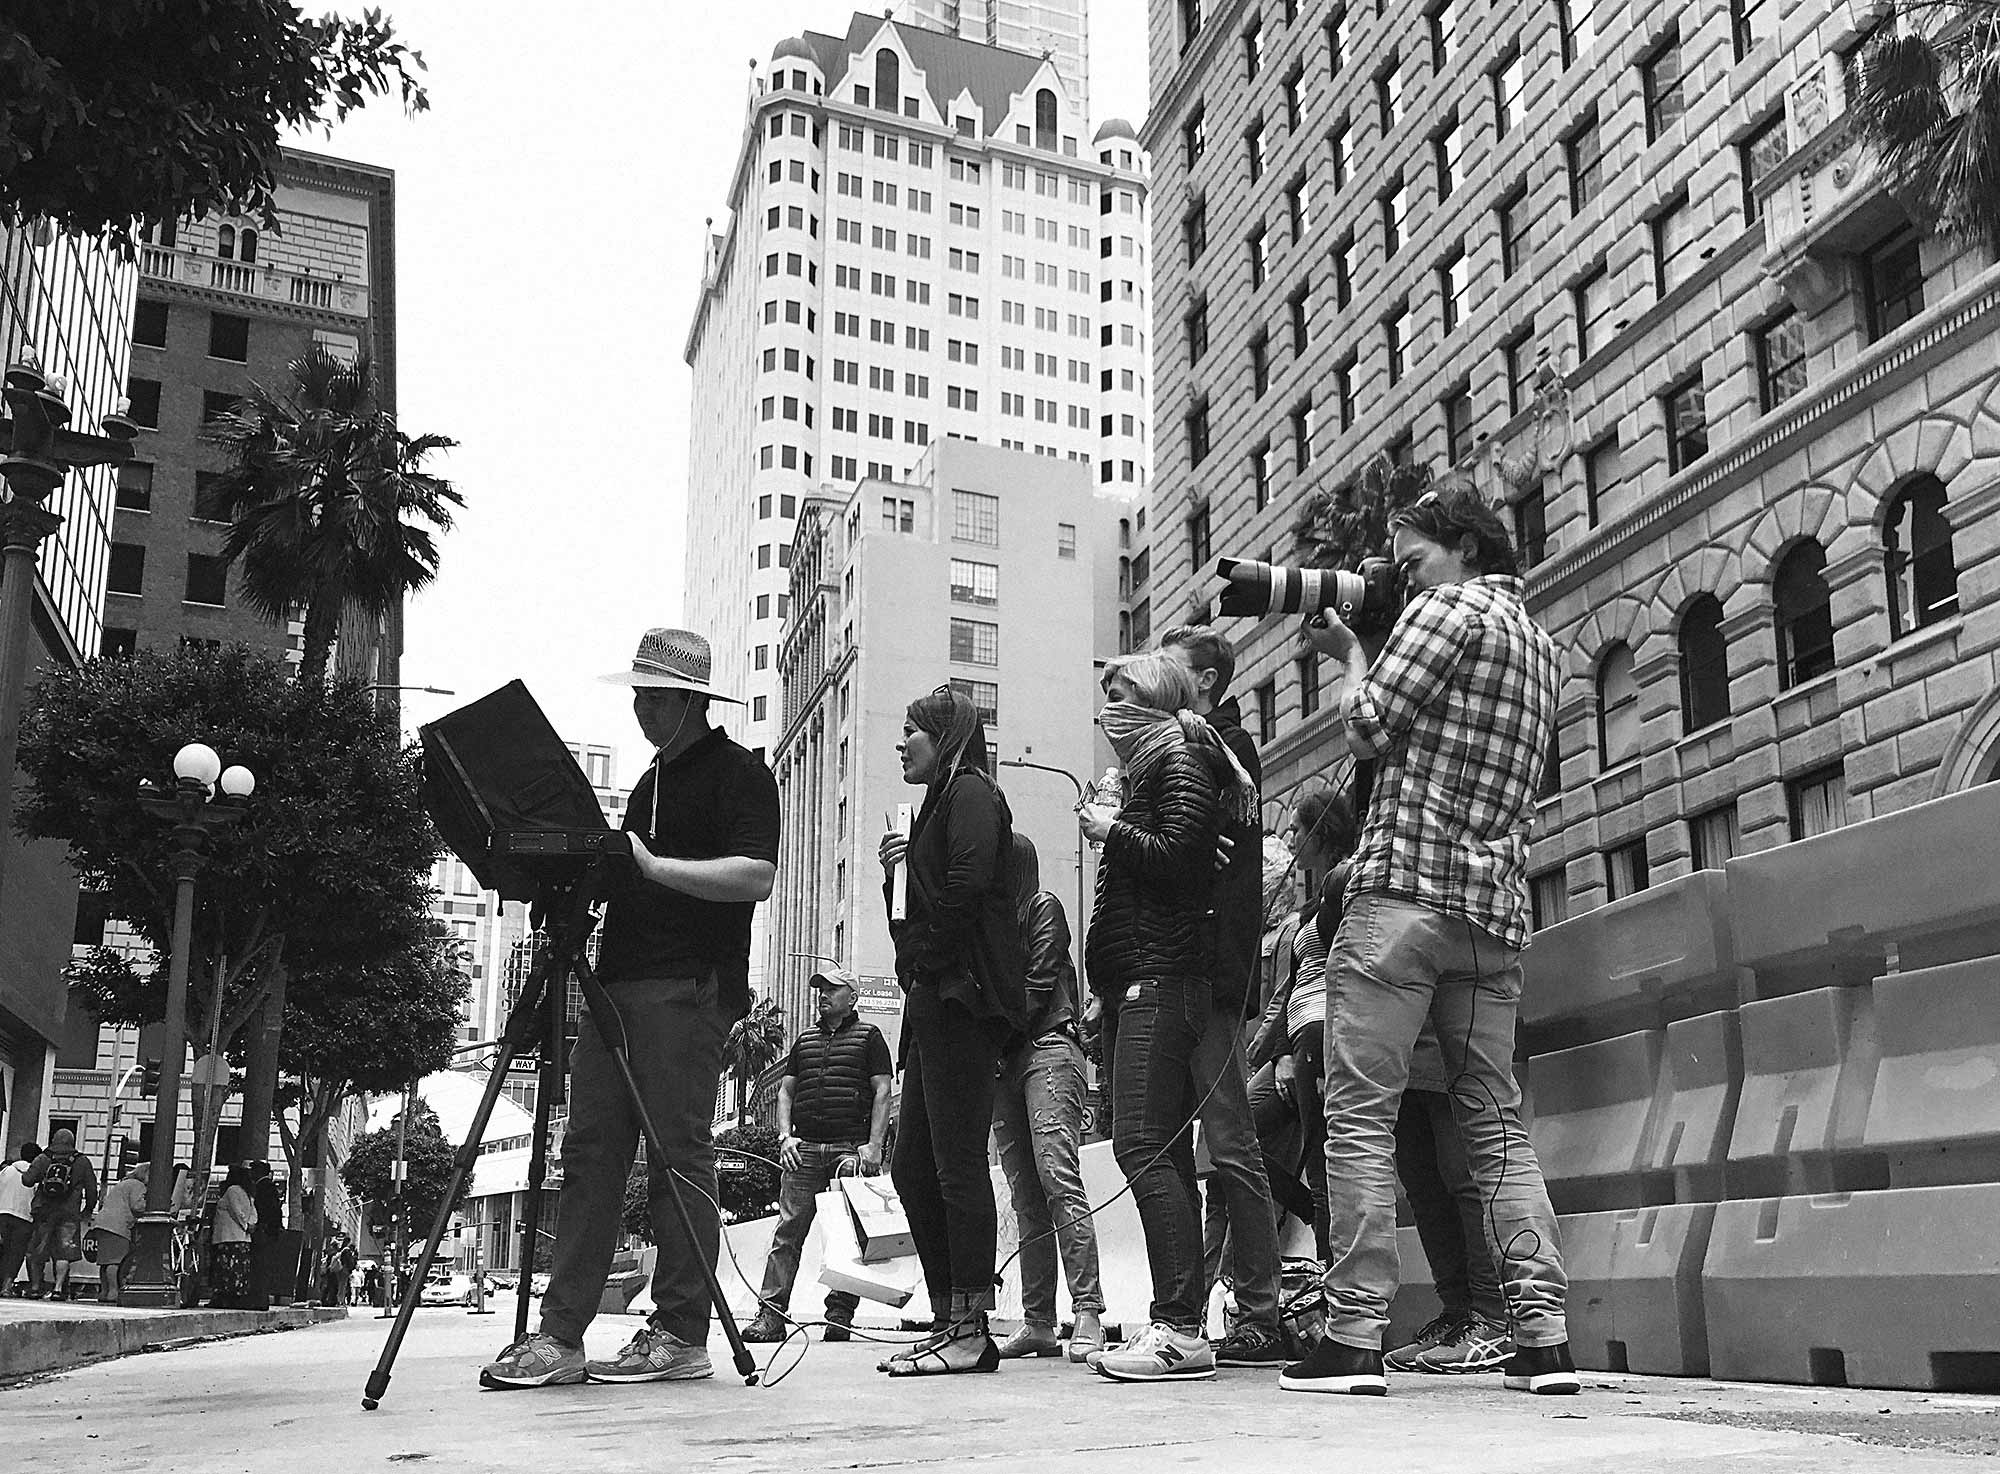 Shooting on the streets of downtown Los Angeles across a 20 block radius permitted to us by the film commission of LA.